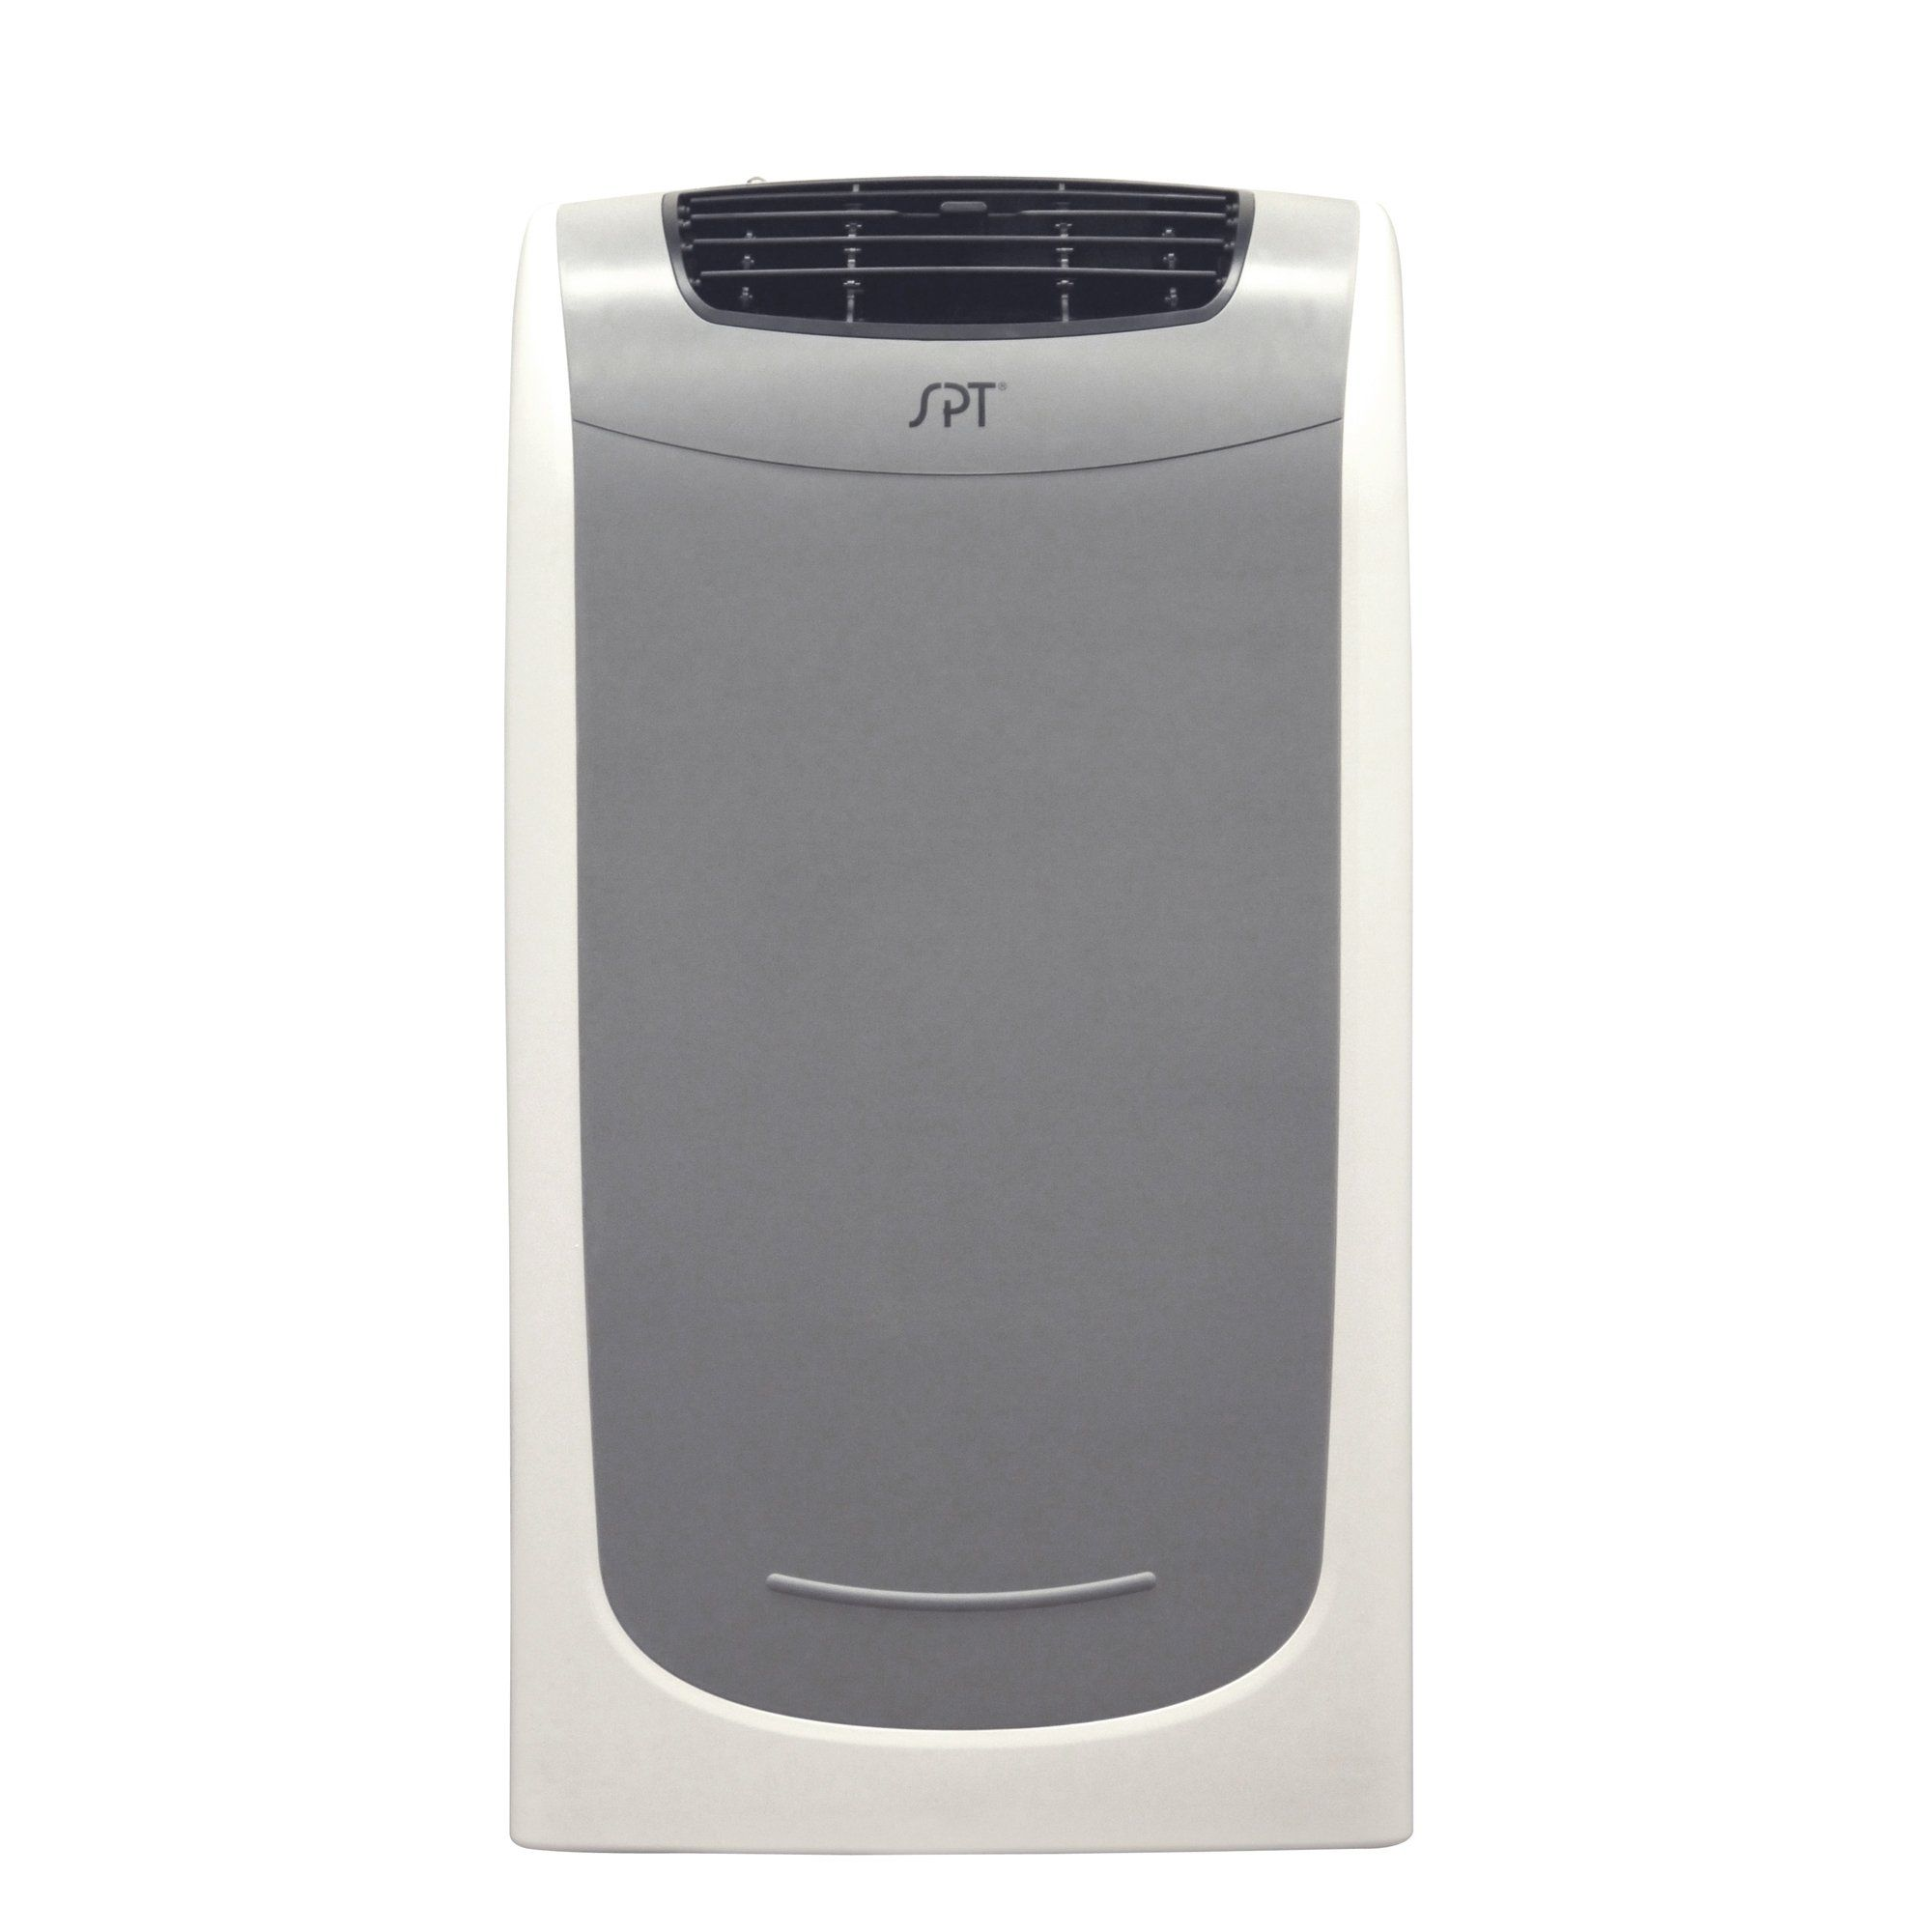 Spt 13000btu Dualhose Portable Ac You Can Find Out More Details At The Link Of The Image This Portable Air Conditioner Portable Ac Room Air Conditioners